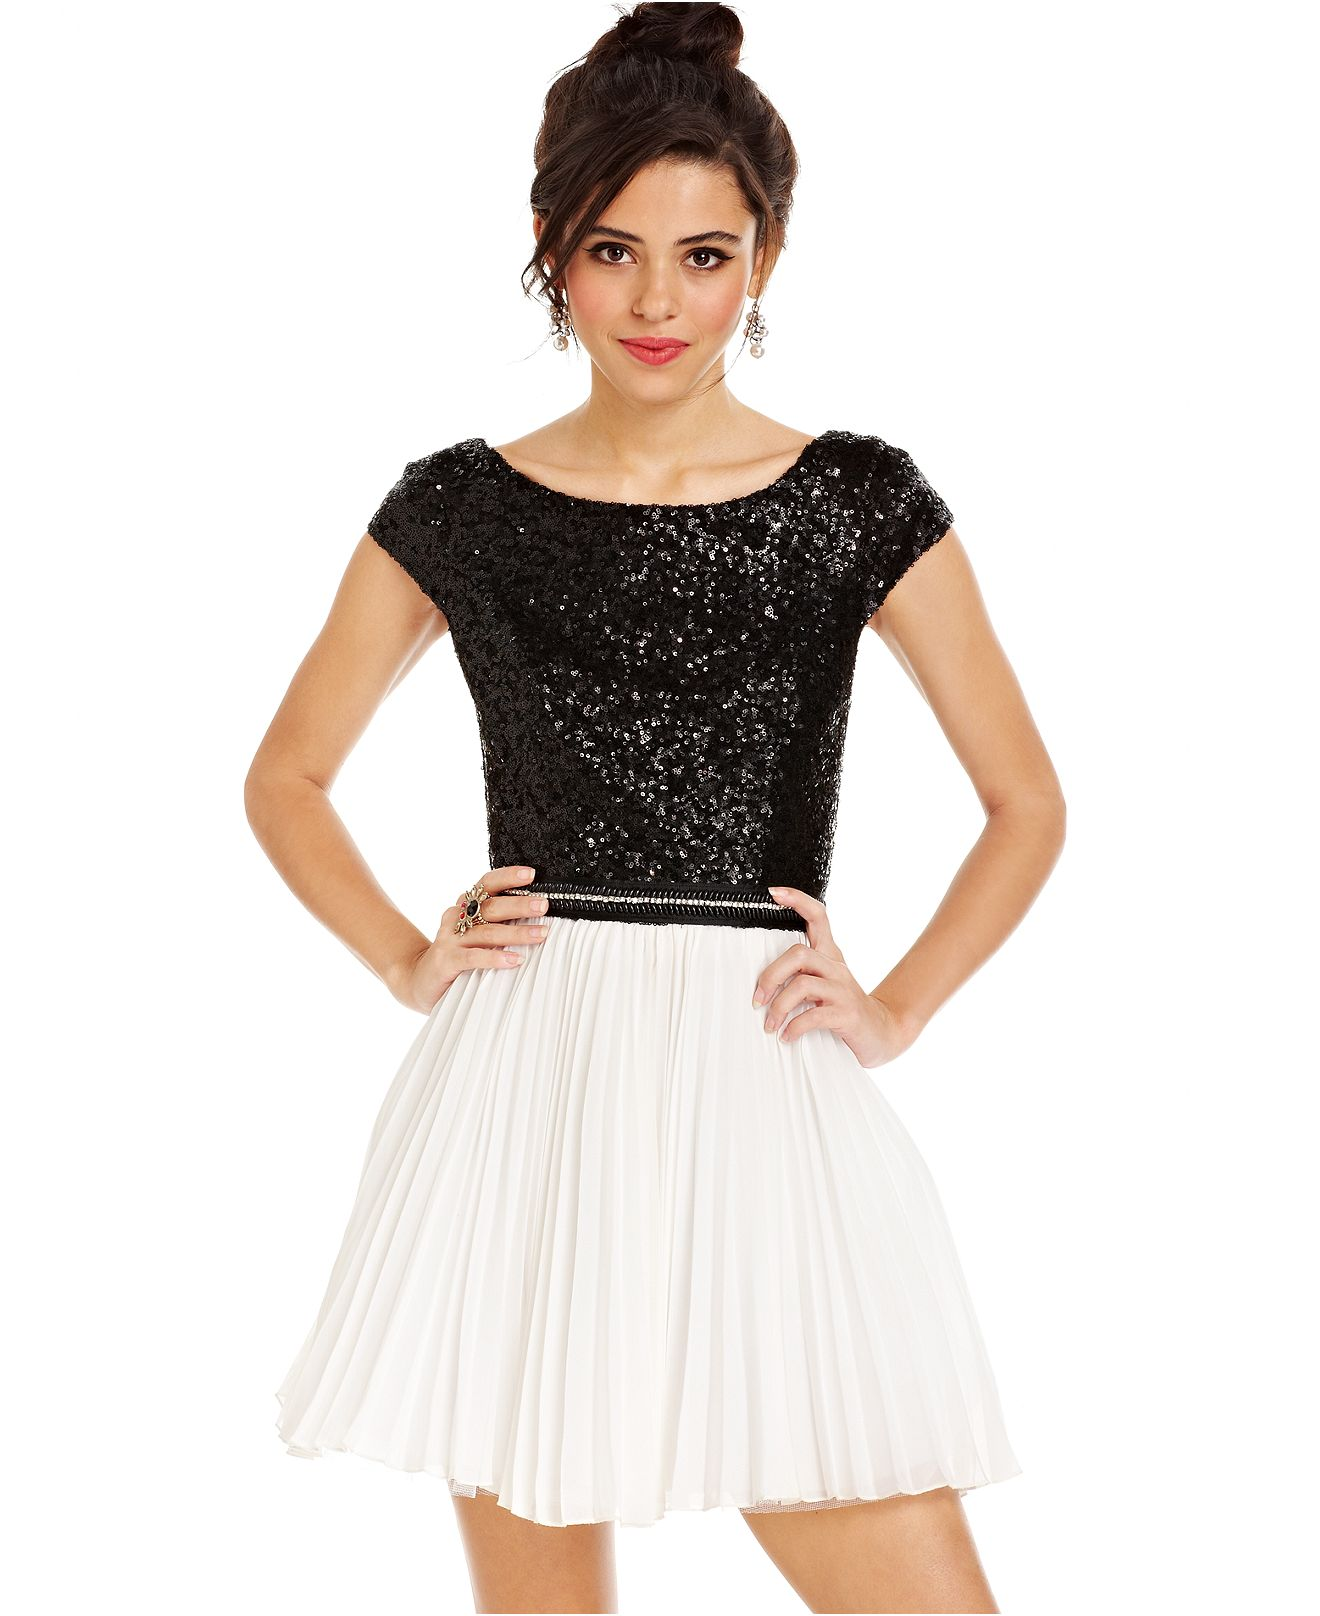 Homecoming Dresses With Sleeves Macy'S - Holiday Dresses